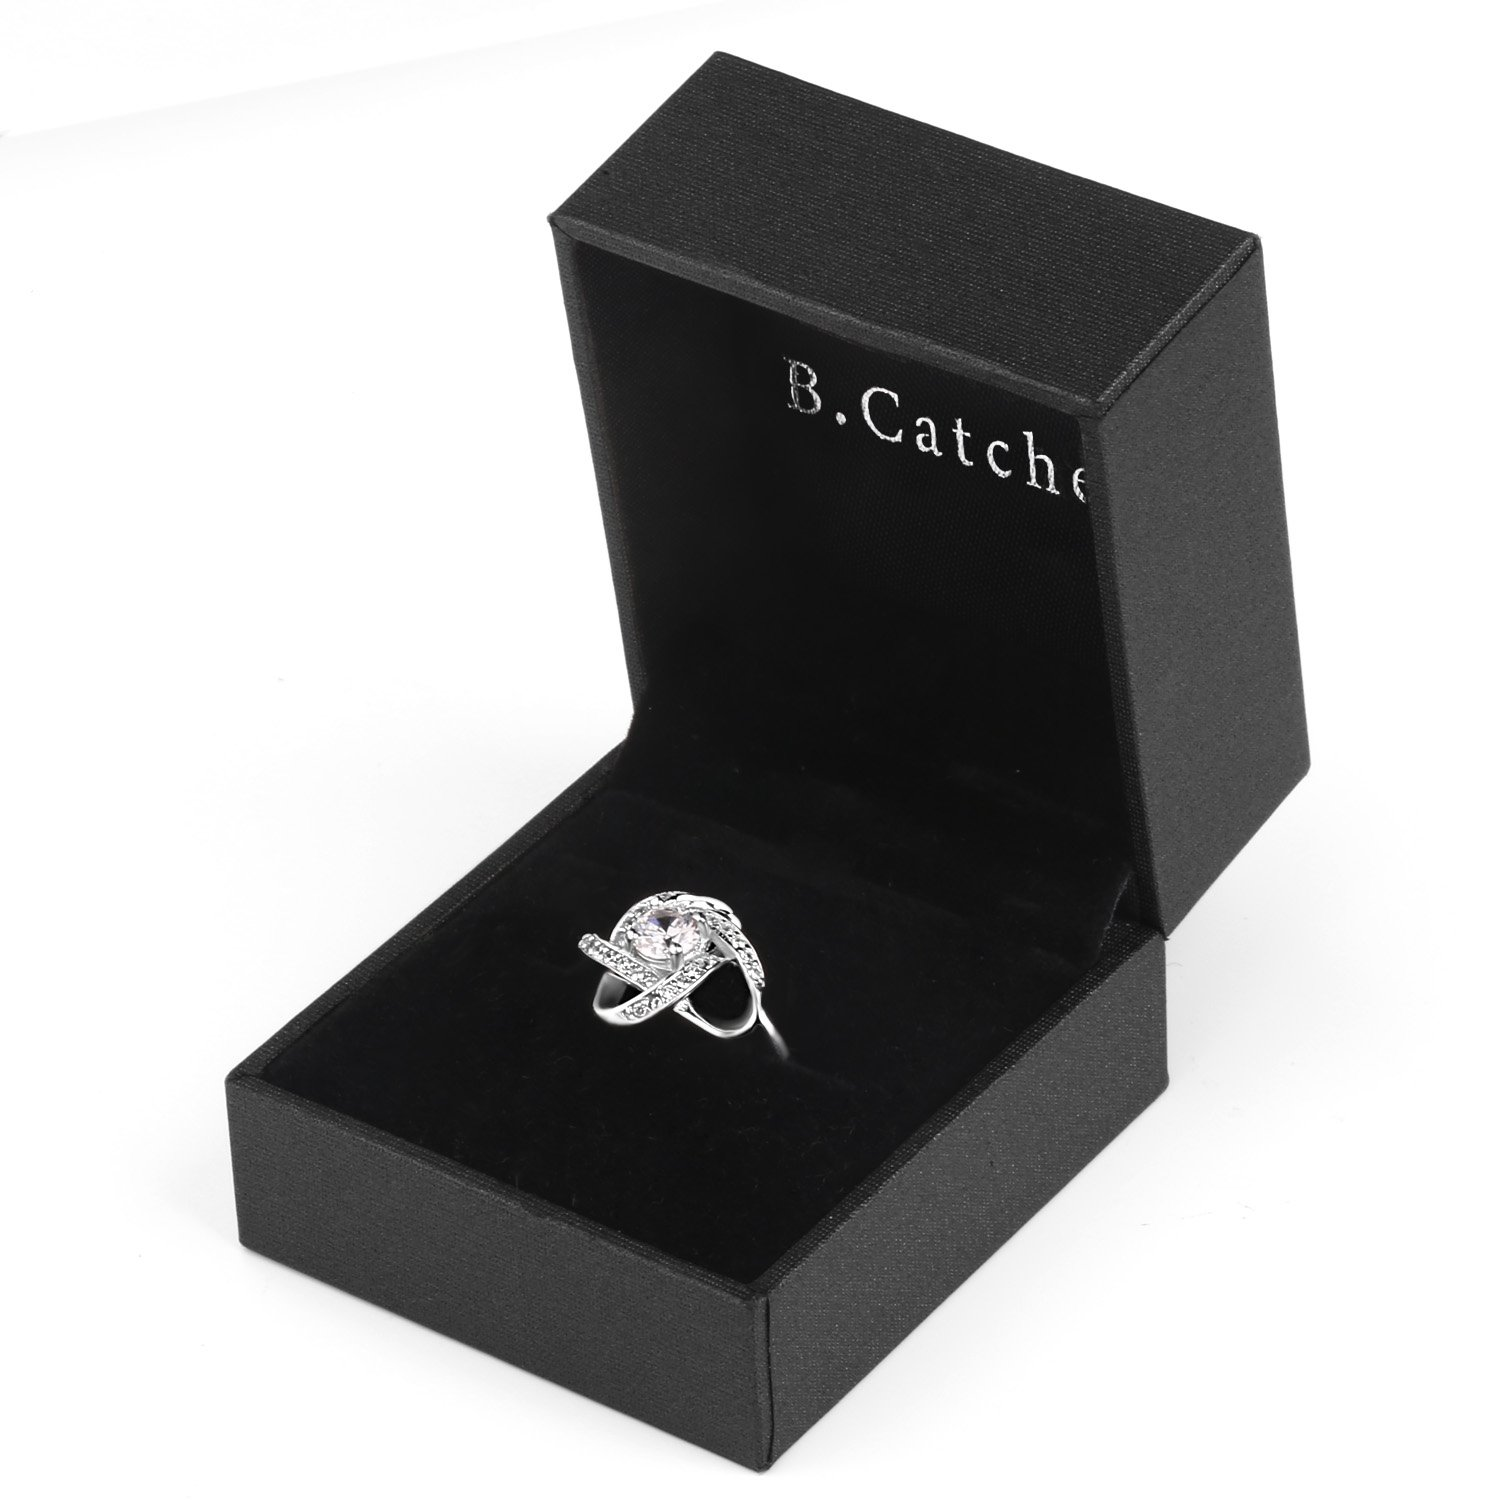 B.Catcher Women's Ring Adjustable 925 Sterling Silver Cubic Zirconia Valentine's Gift for Her by B.Catcher (Image #6)